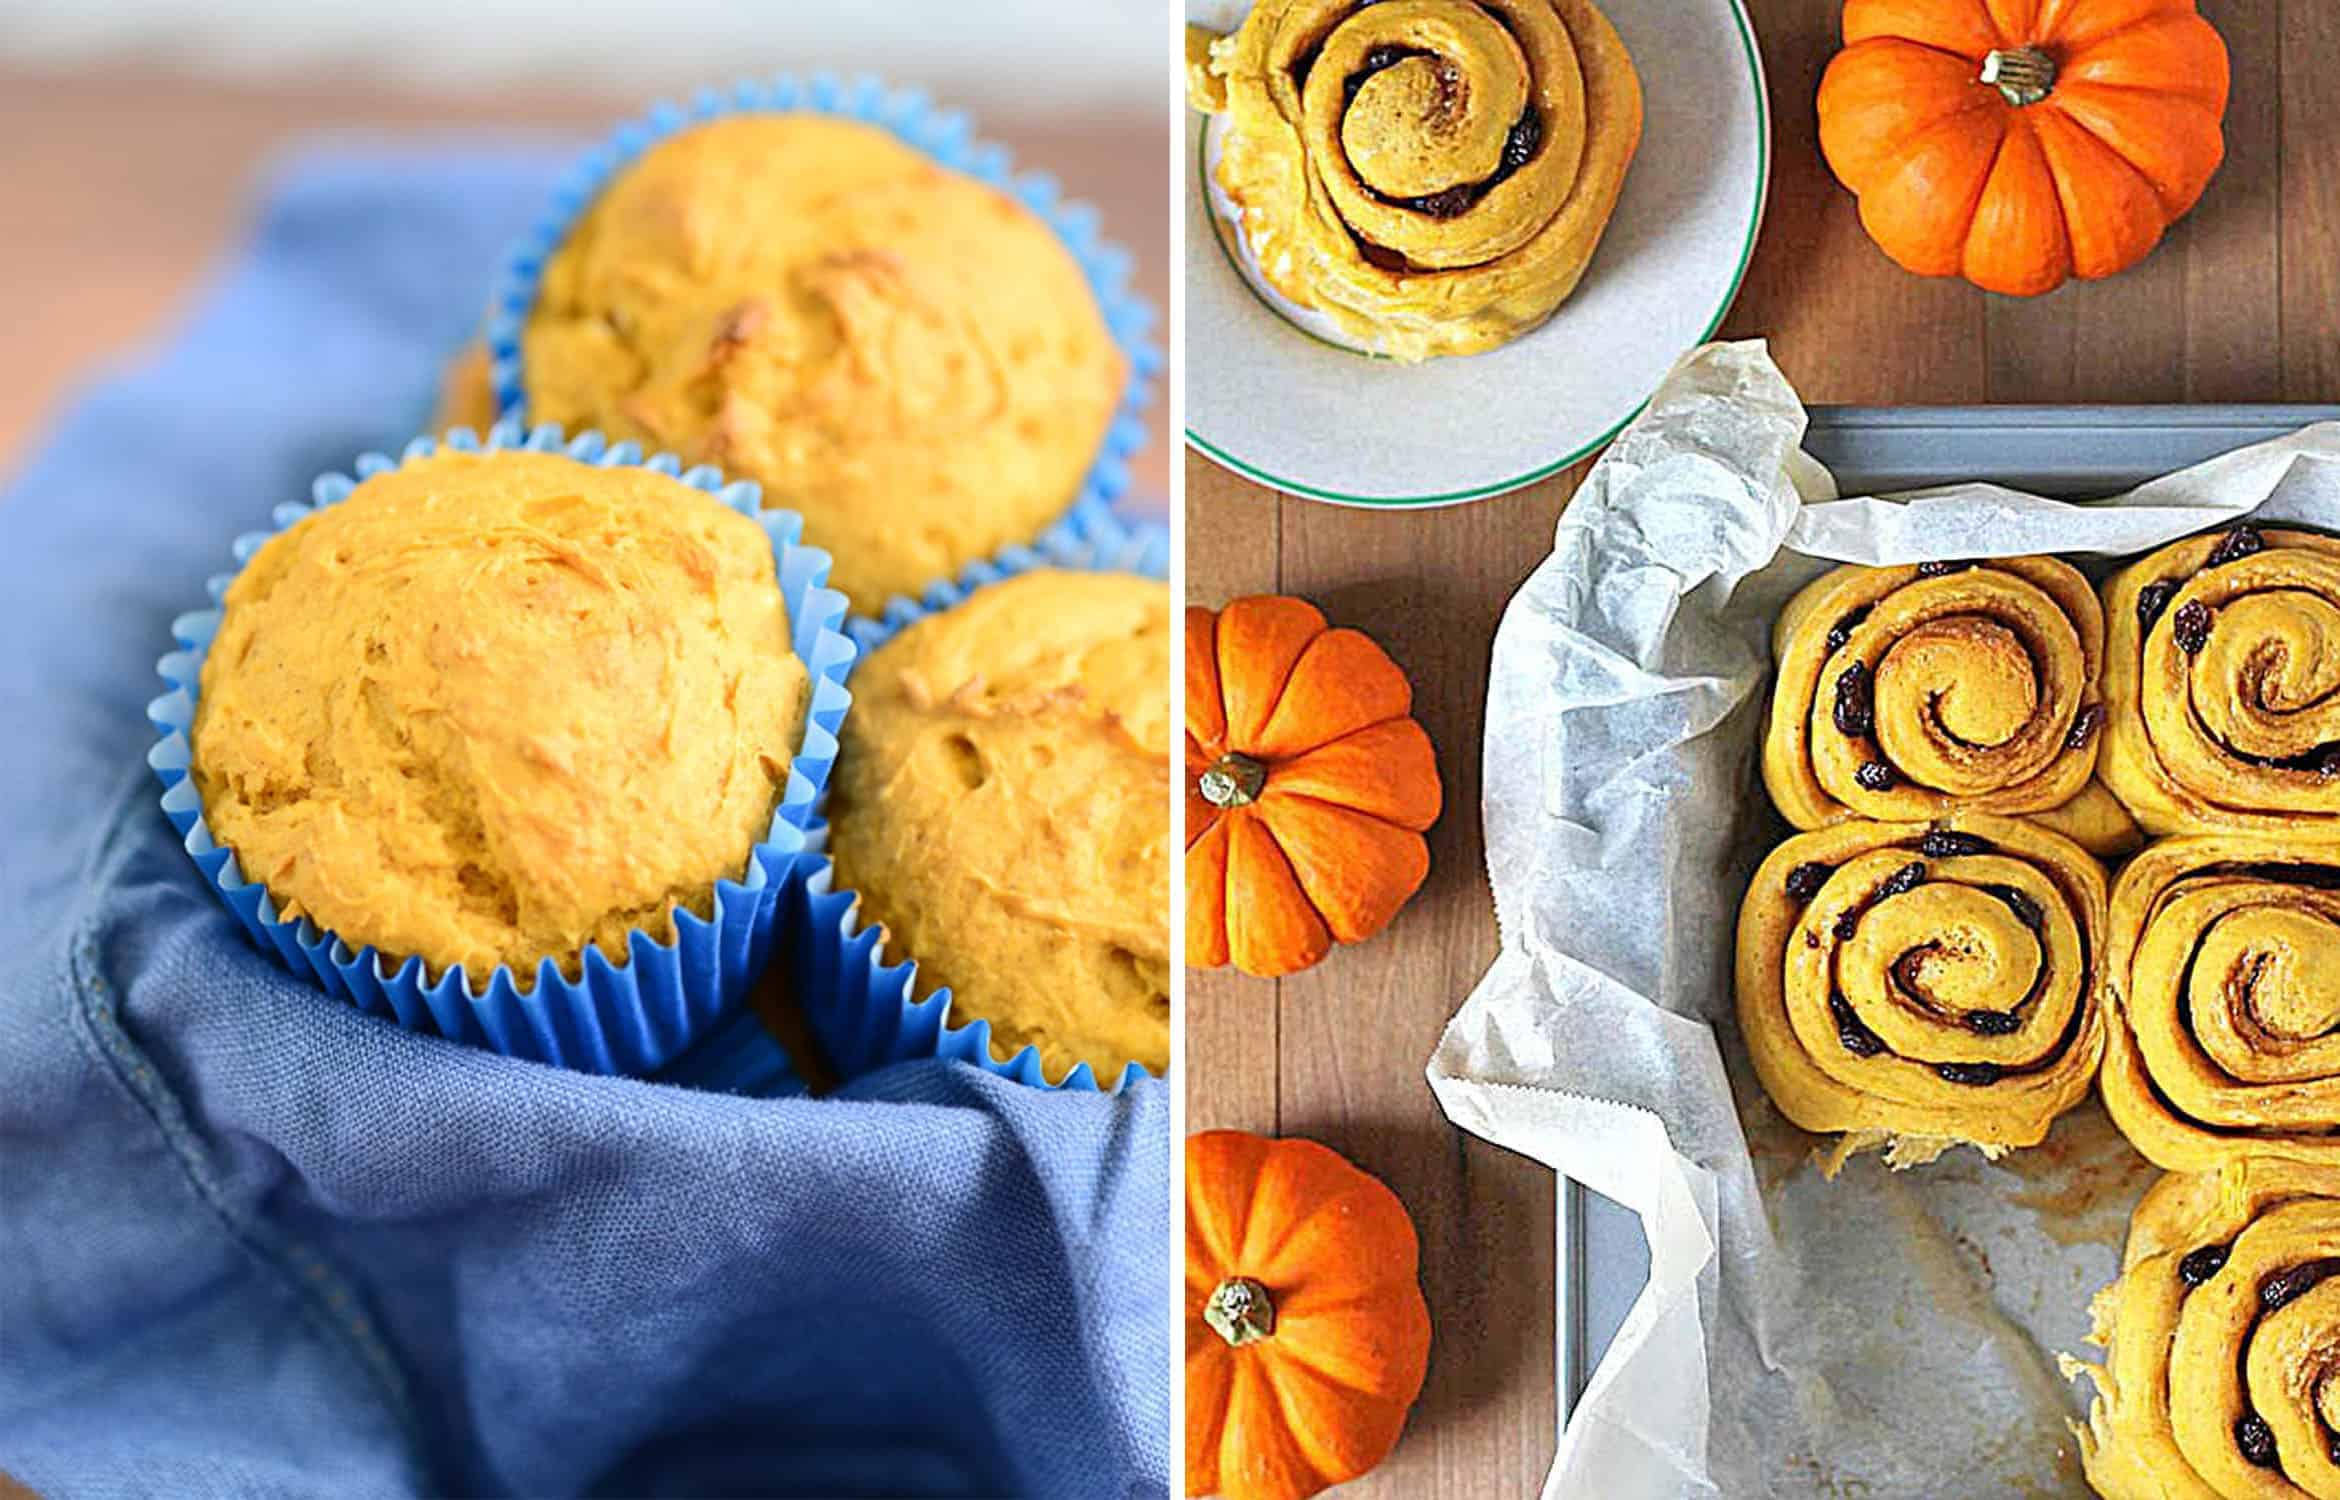 Three PUMPKIN MUFFINS on a blue tea towel - Delicious Every Day and VEGAN PUMPKIN CINNAMON ROLLS in a tray - Delightful Adventures